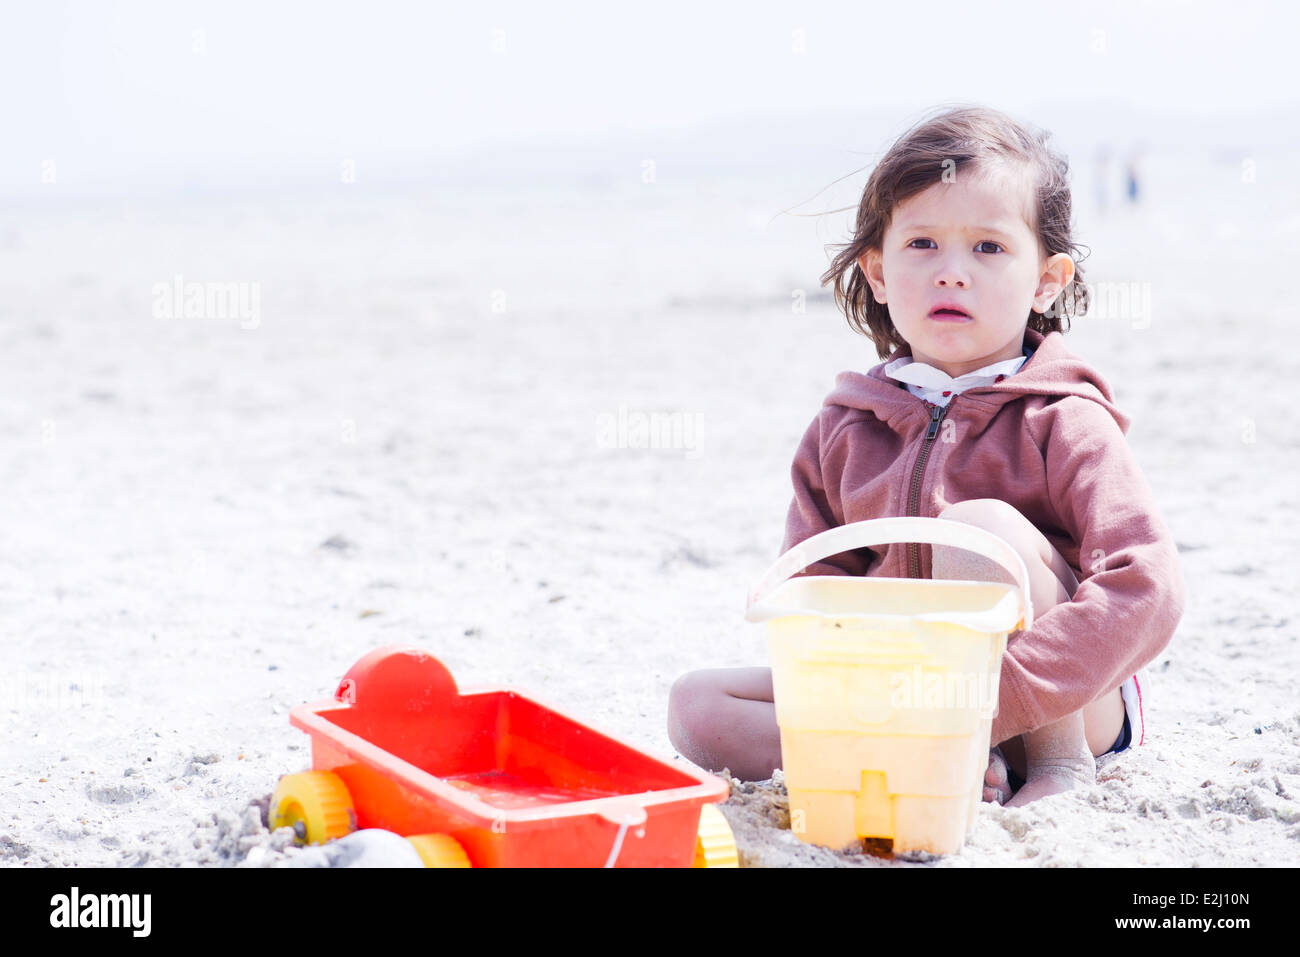 Little girl playing in sand at the beach - Stock Image